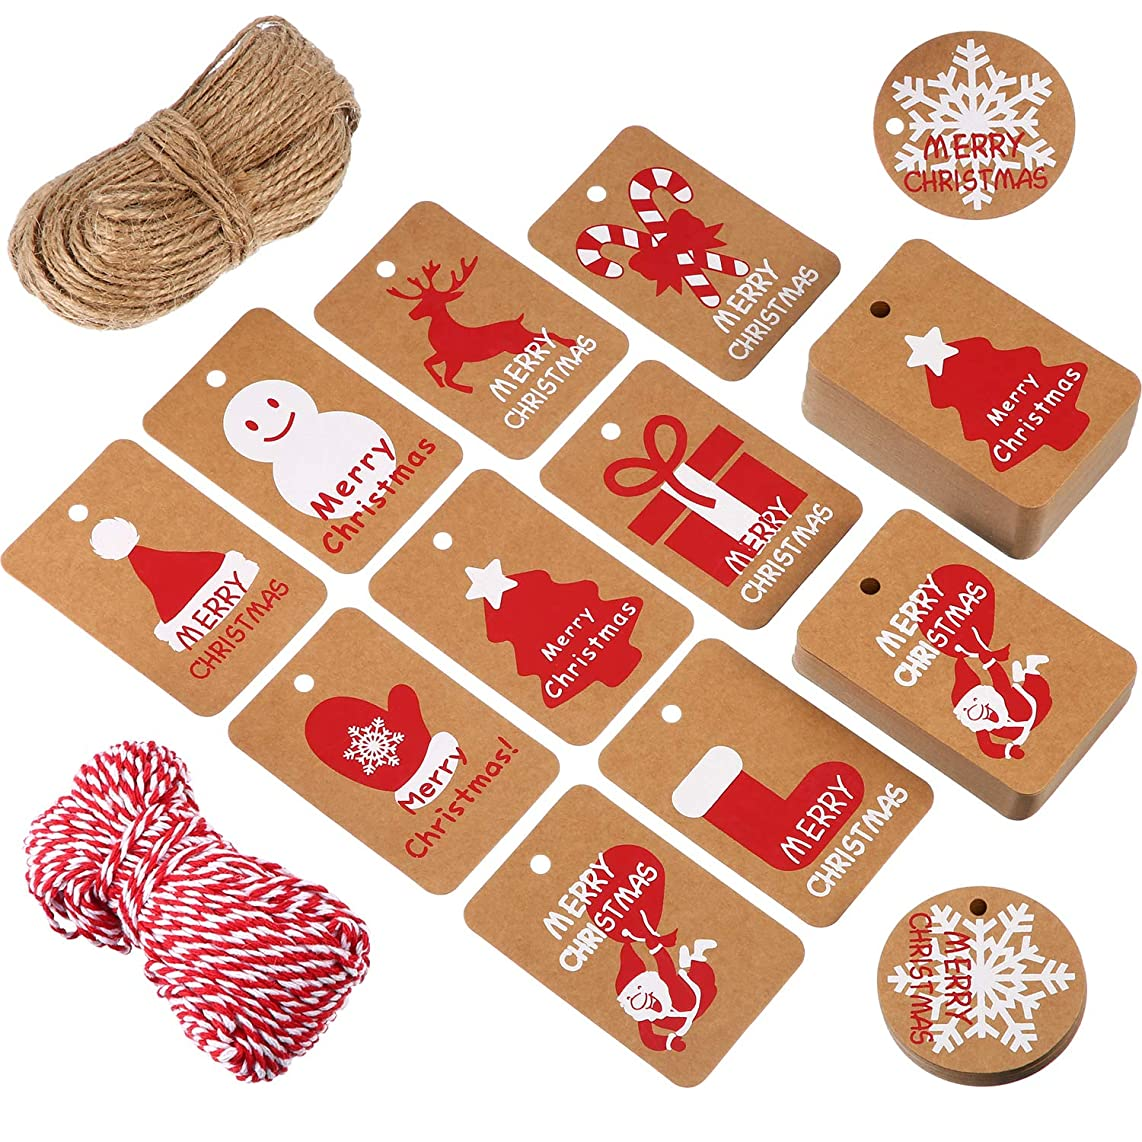 Tatuo 200 Pieces Kraft Paper Gift Tags Crafts Hang Label Holiday Tag in 10 Styles Christmas Patterns with 295 Feet Twine for Christmas Winter Theme Party Wedding Birthday Gift Wrapping